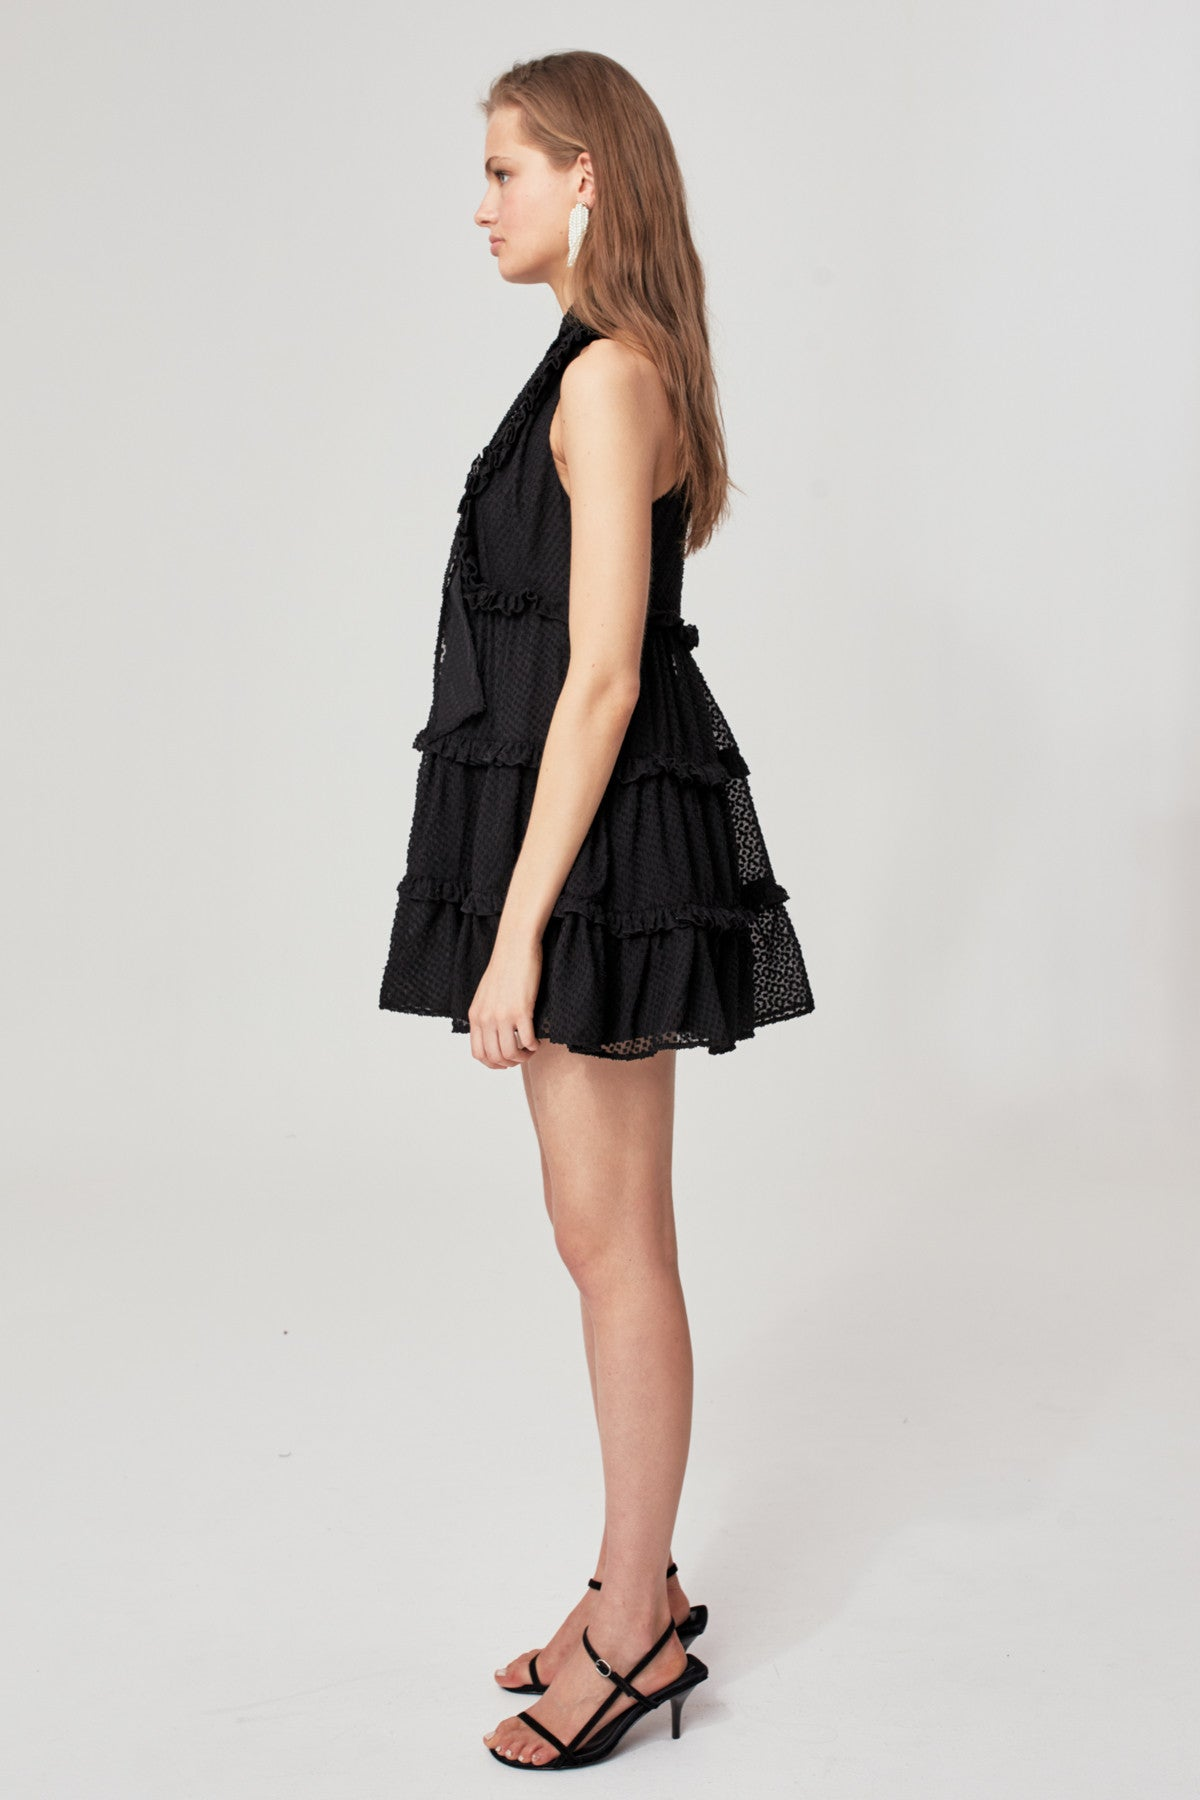 BREAK IN TWO SHORT SLEEVE DRESS black